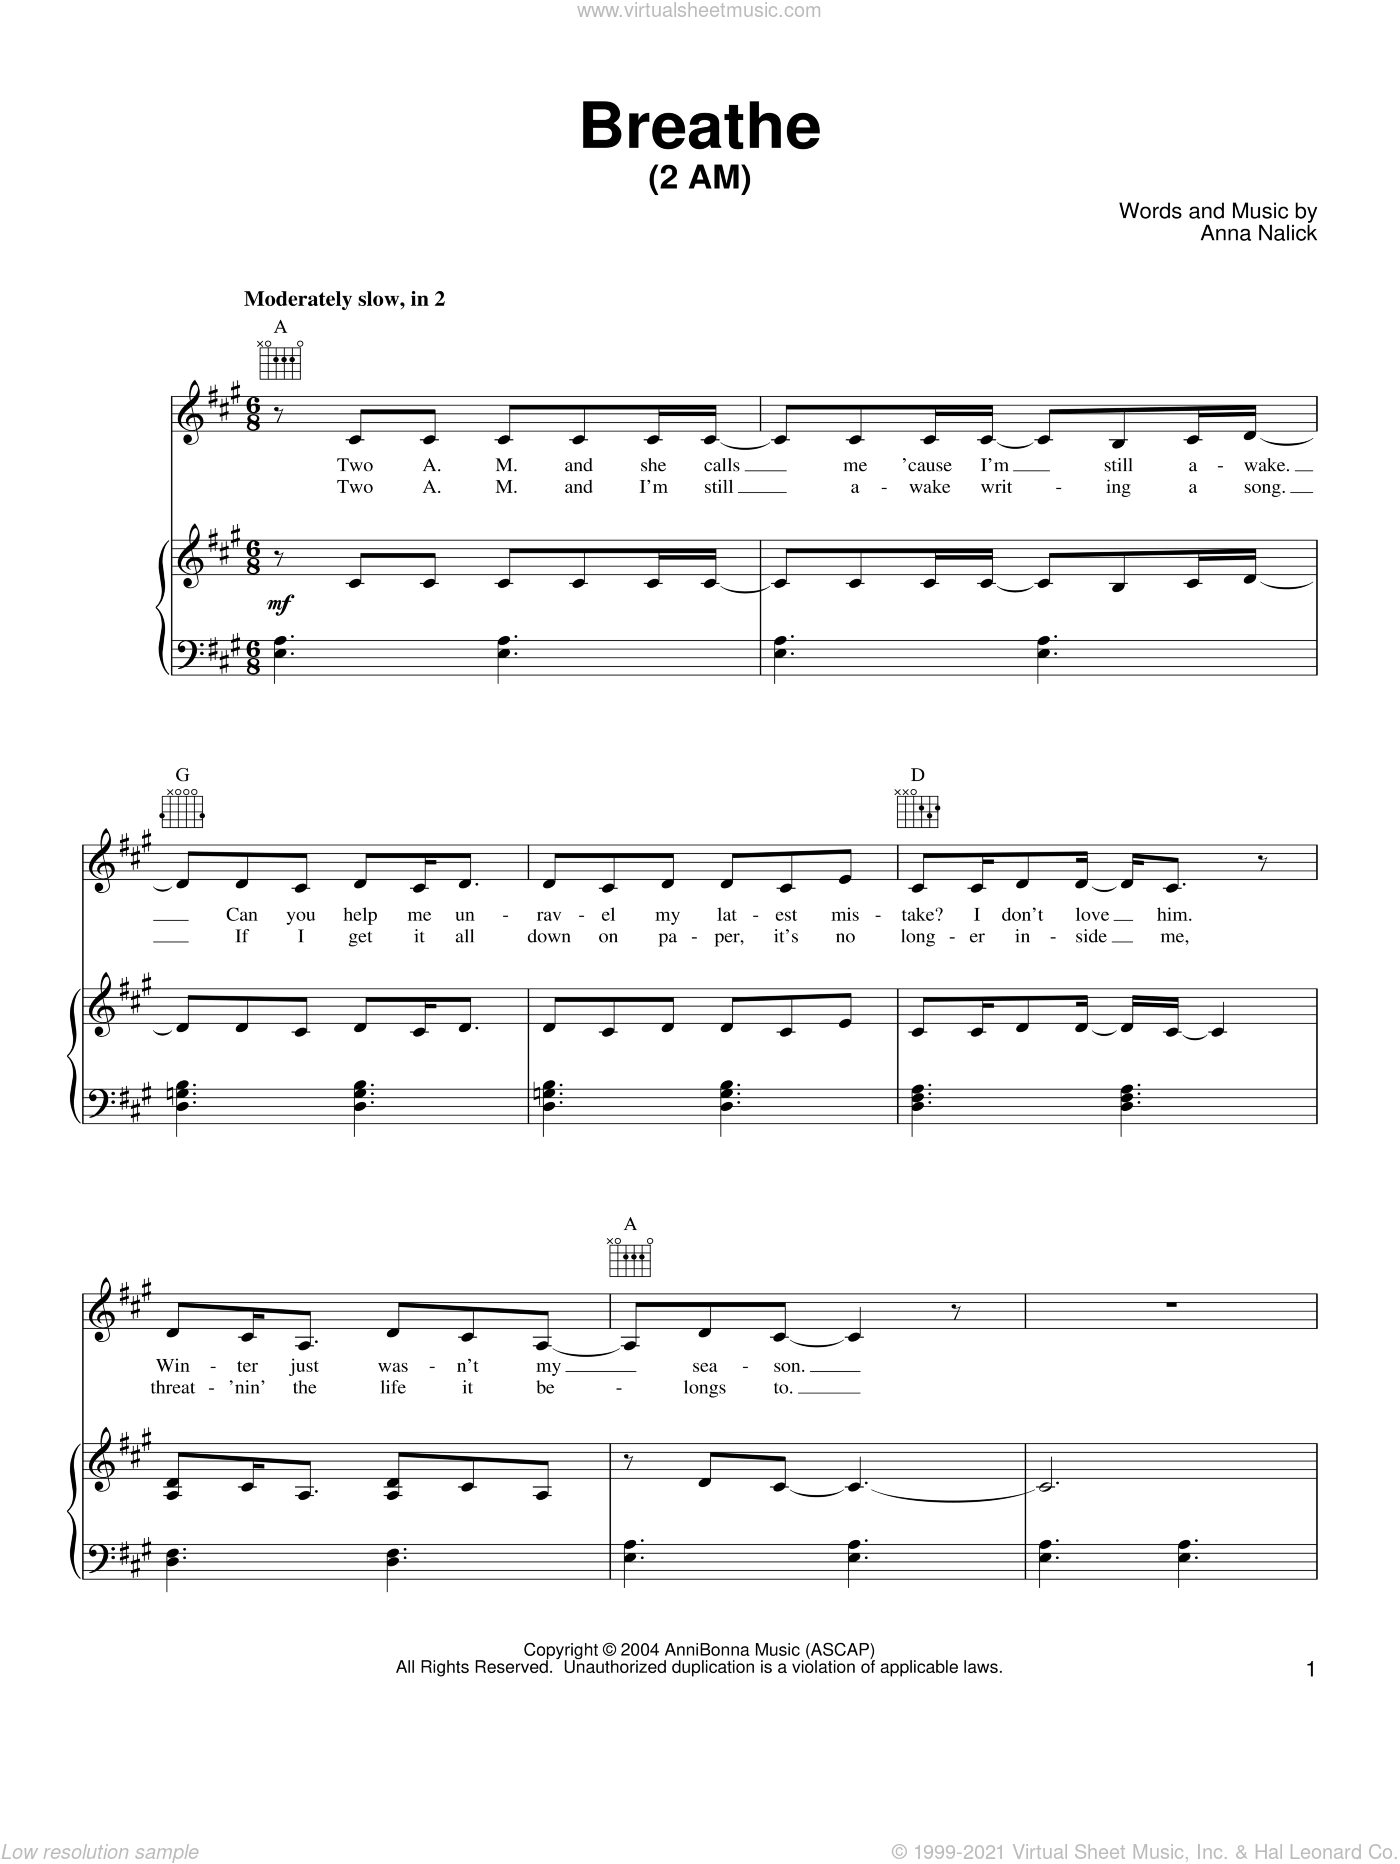 Breathe (2 AM) sheet music for voice, piano or guitar by Anna Nalick, intermediate skill level